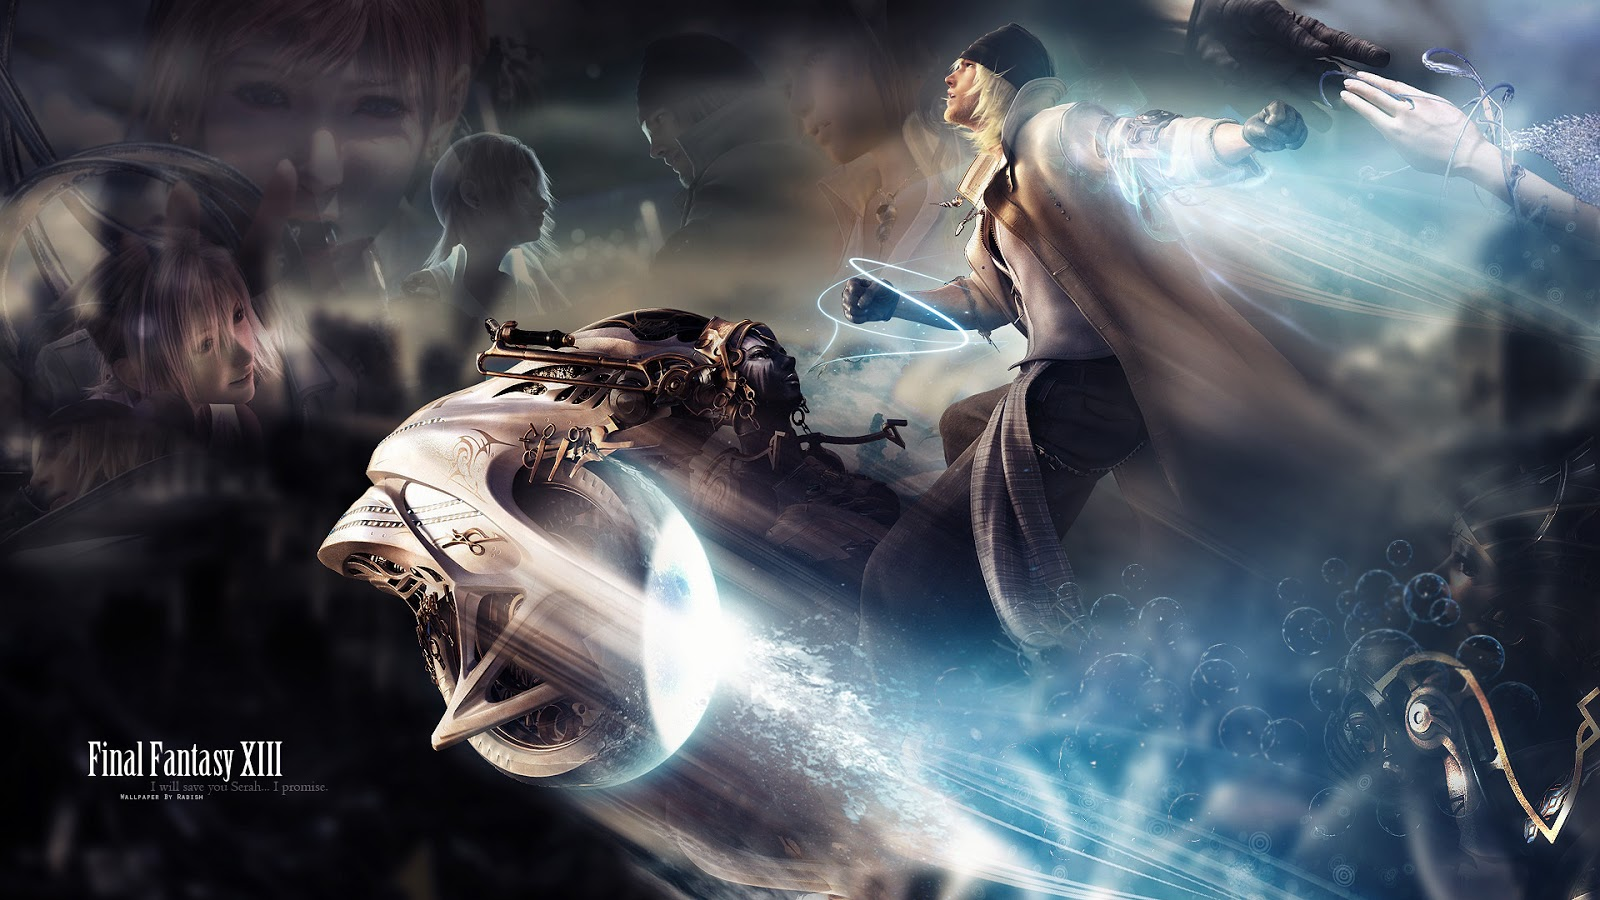 final fantasy xiii wallpaper 1080p